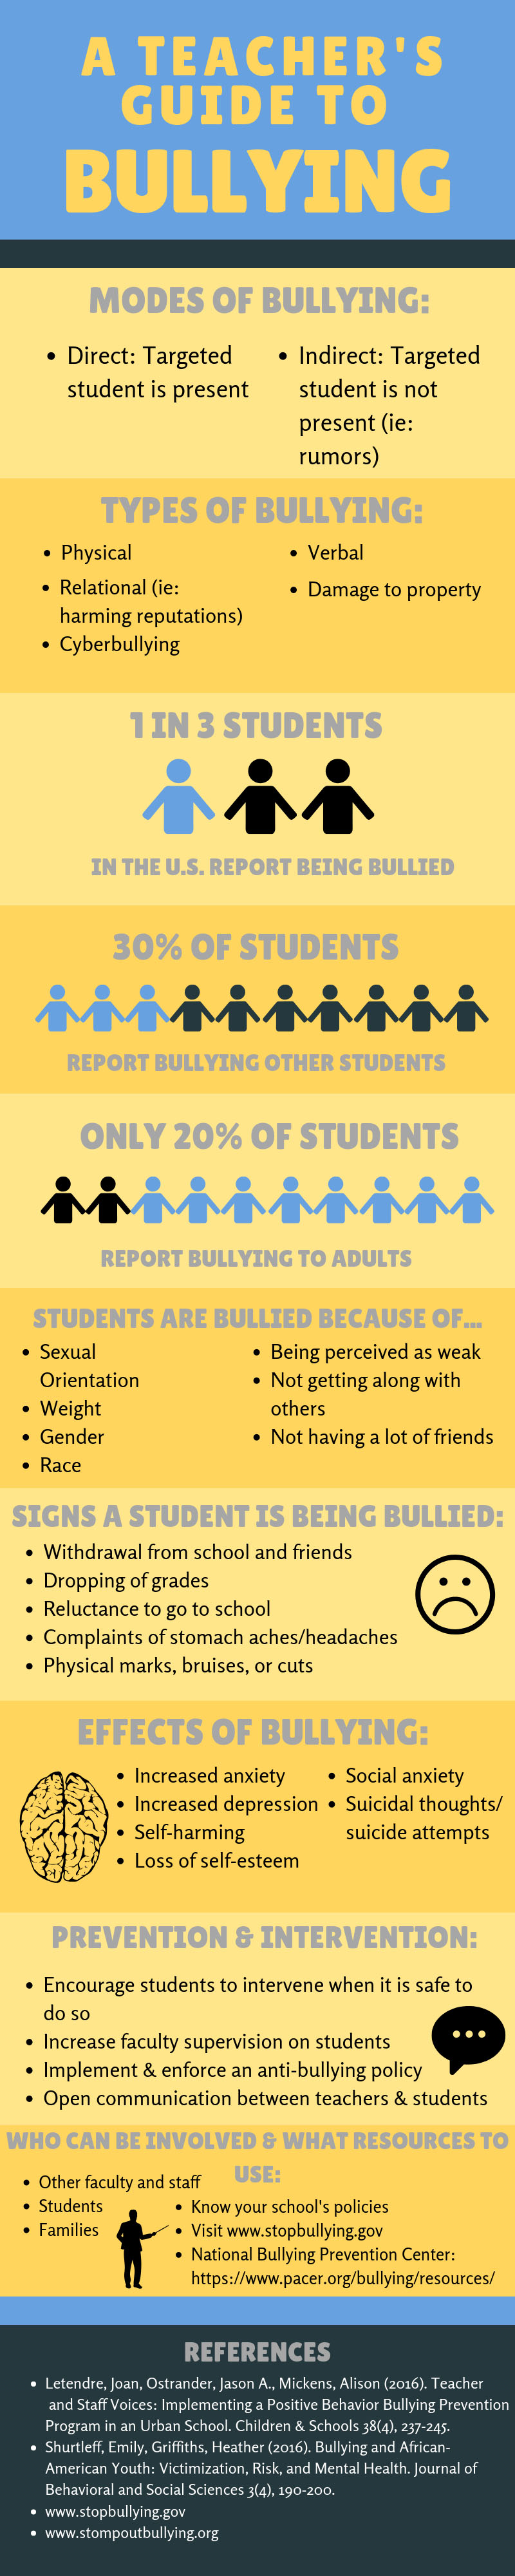 This infographic, A Teacher's Guide to Bullying, has modes of bullying, types, frequencies, traits targeted by bullies, signs, impact, and interventions. Illustrated with paper cut-outs of humans, a sad face, drwing of a brain, and a silhouwette of a man in a suit with a pointer.